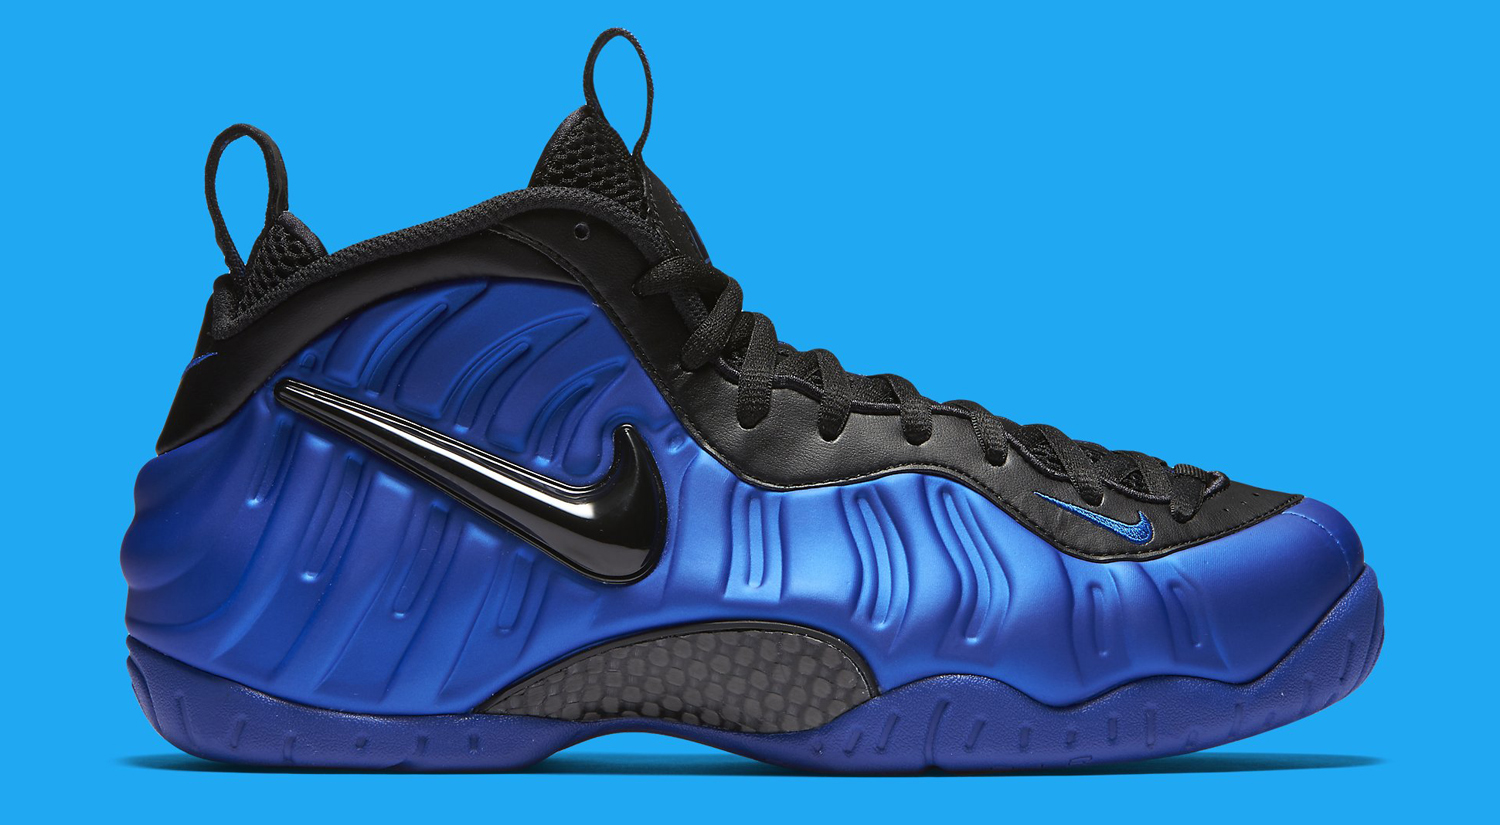 Nike Foamposite Blue And Black